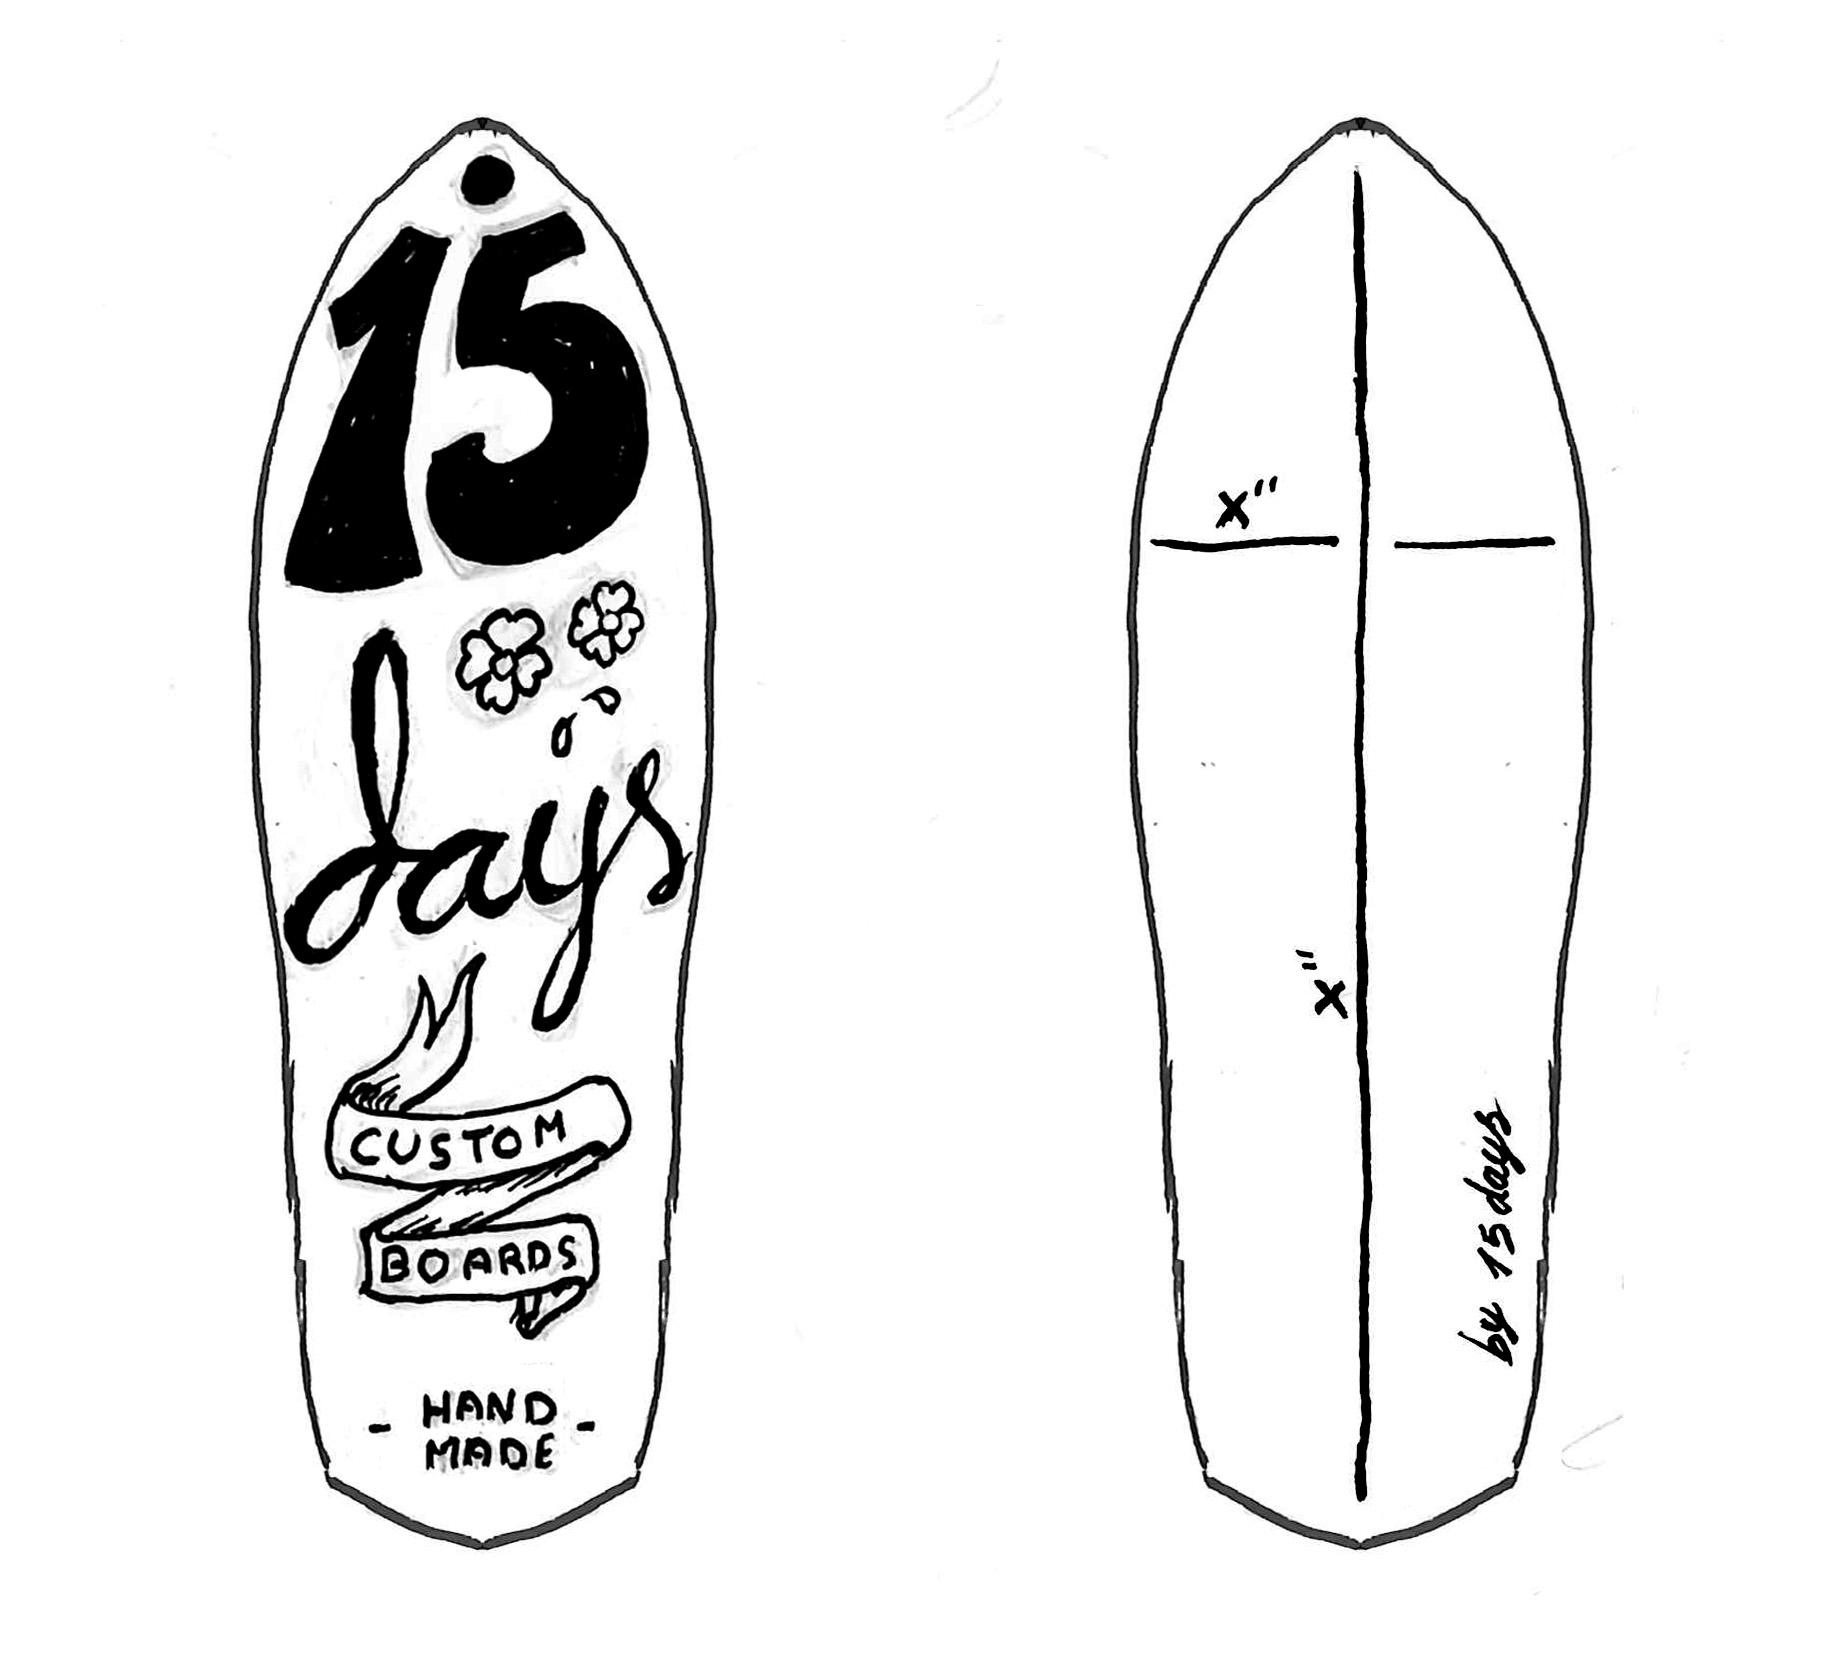 15 days boards - image 5 - student project